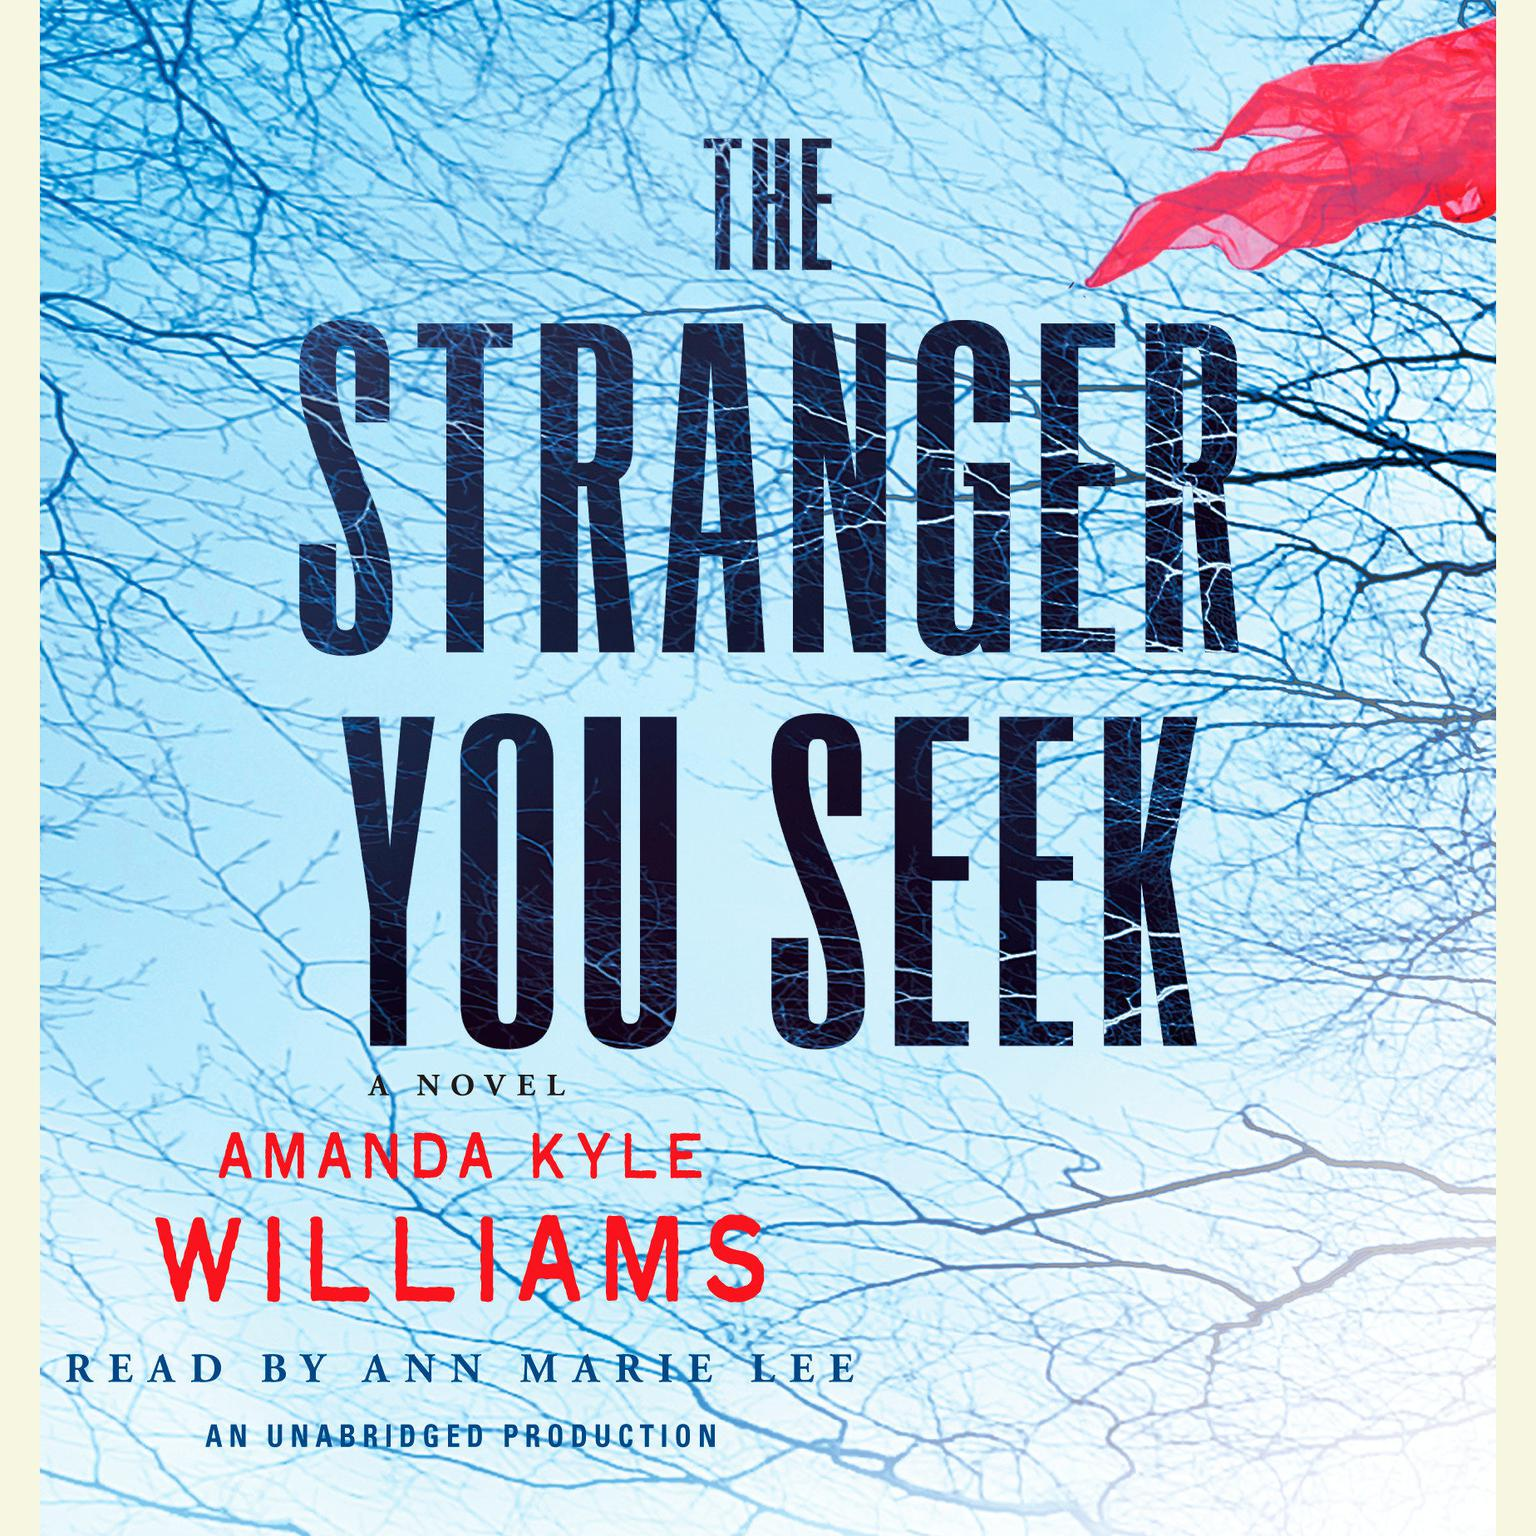 Printable The Stranger You Seek: A Novel Audiobook Cover Art